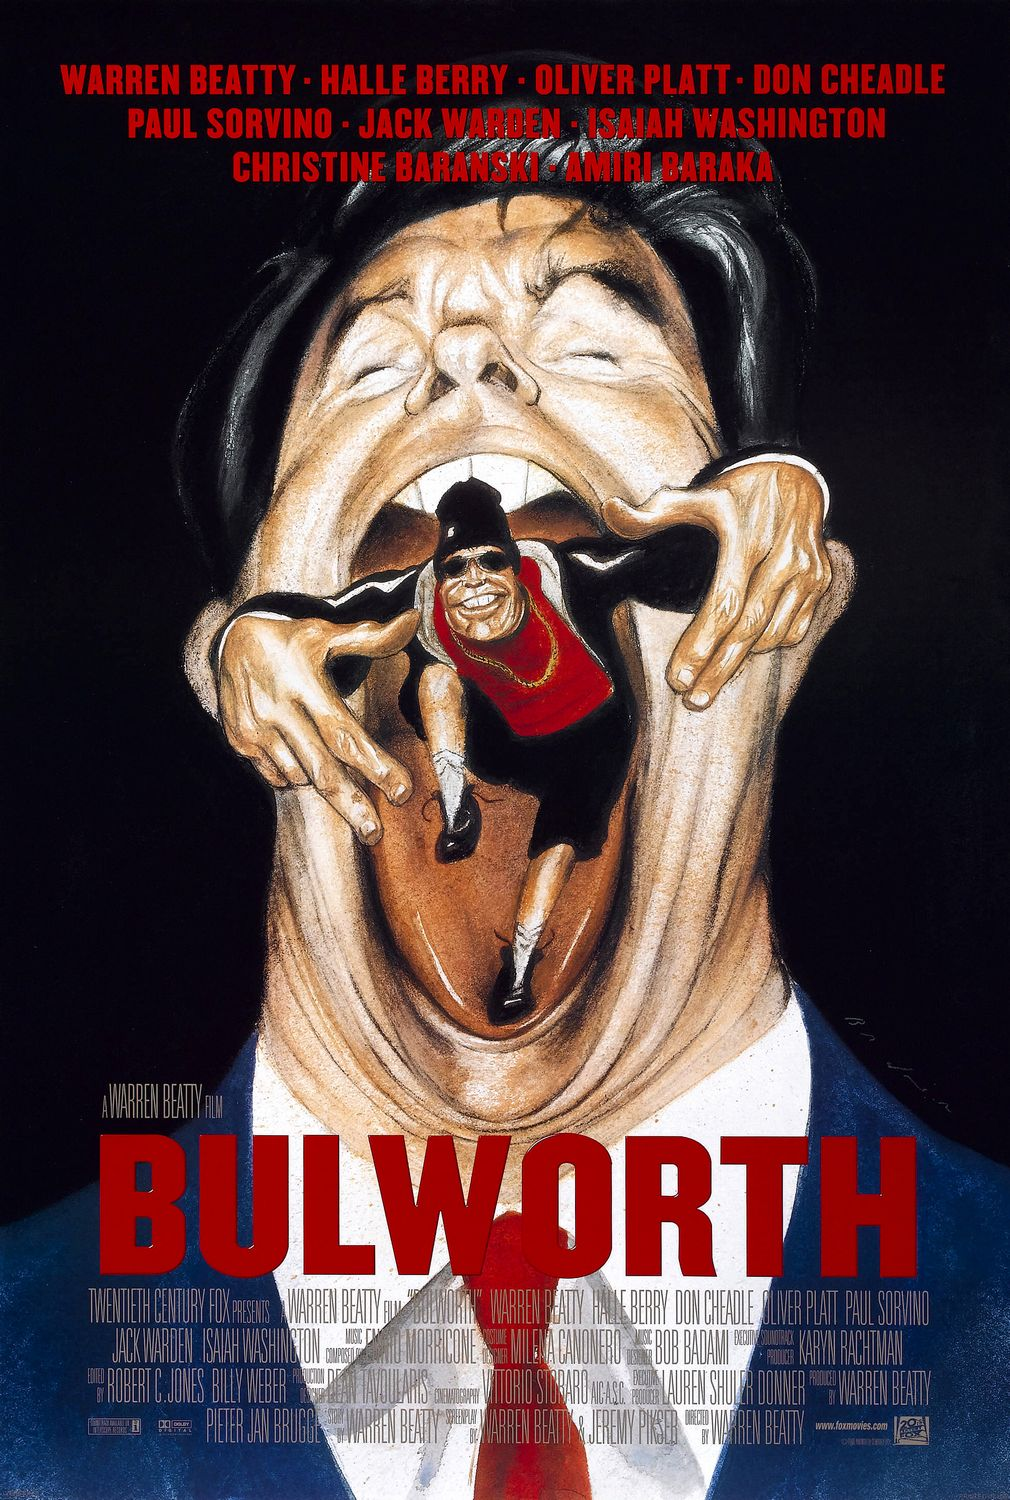 The poster for Bulworth